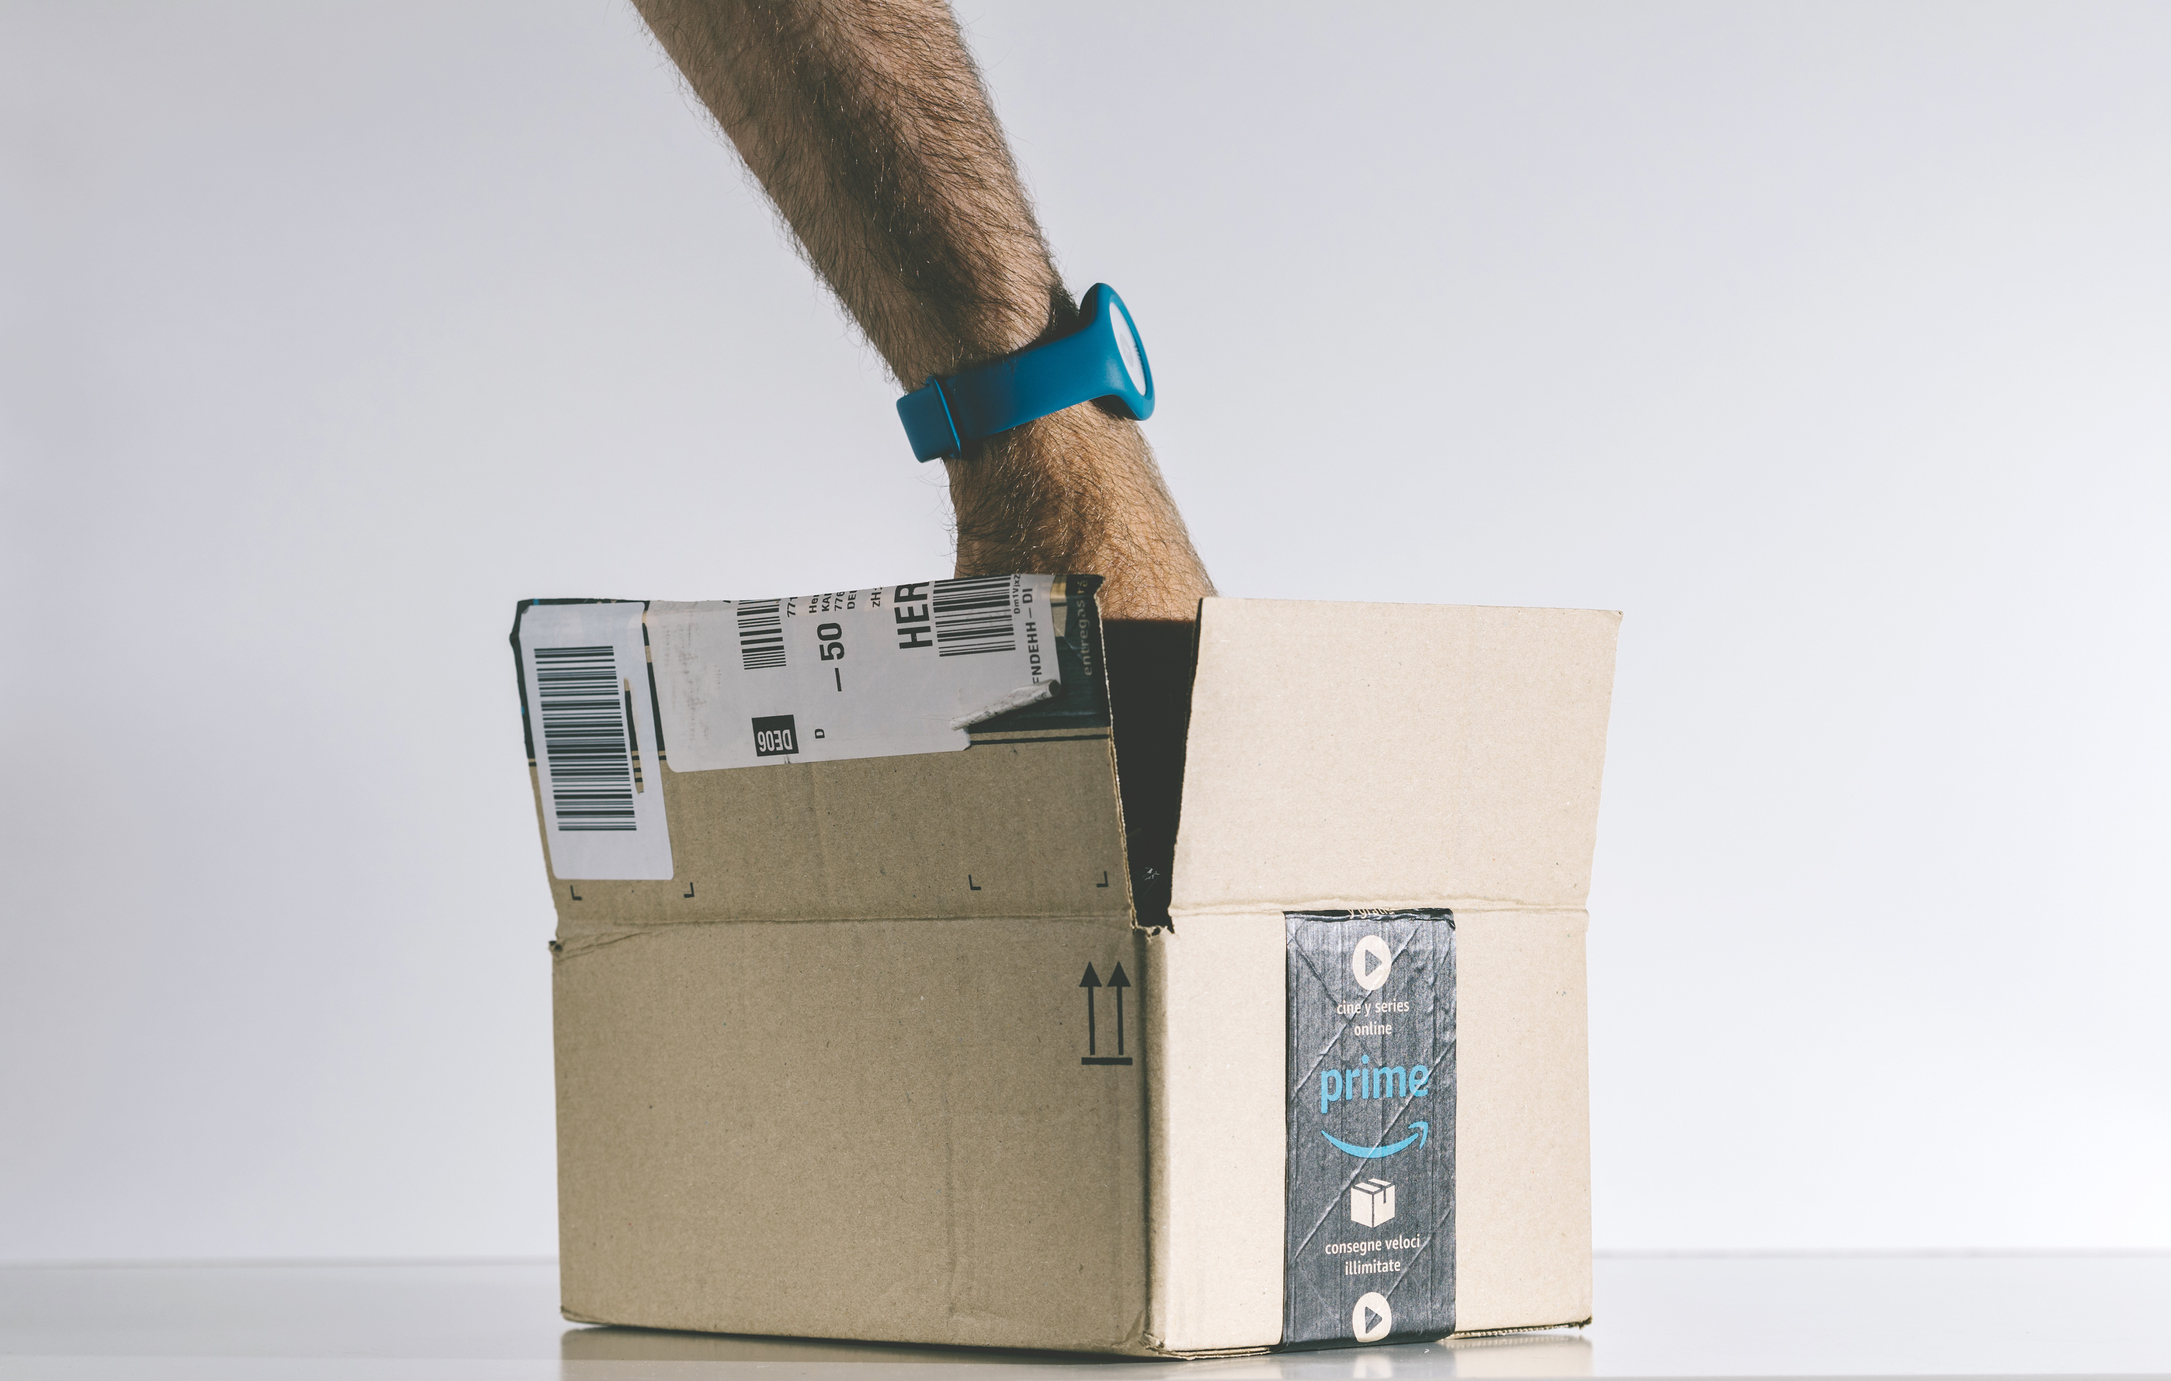 How to Sell on Amazon: Make Six Figures with 7 Simple Steps